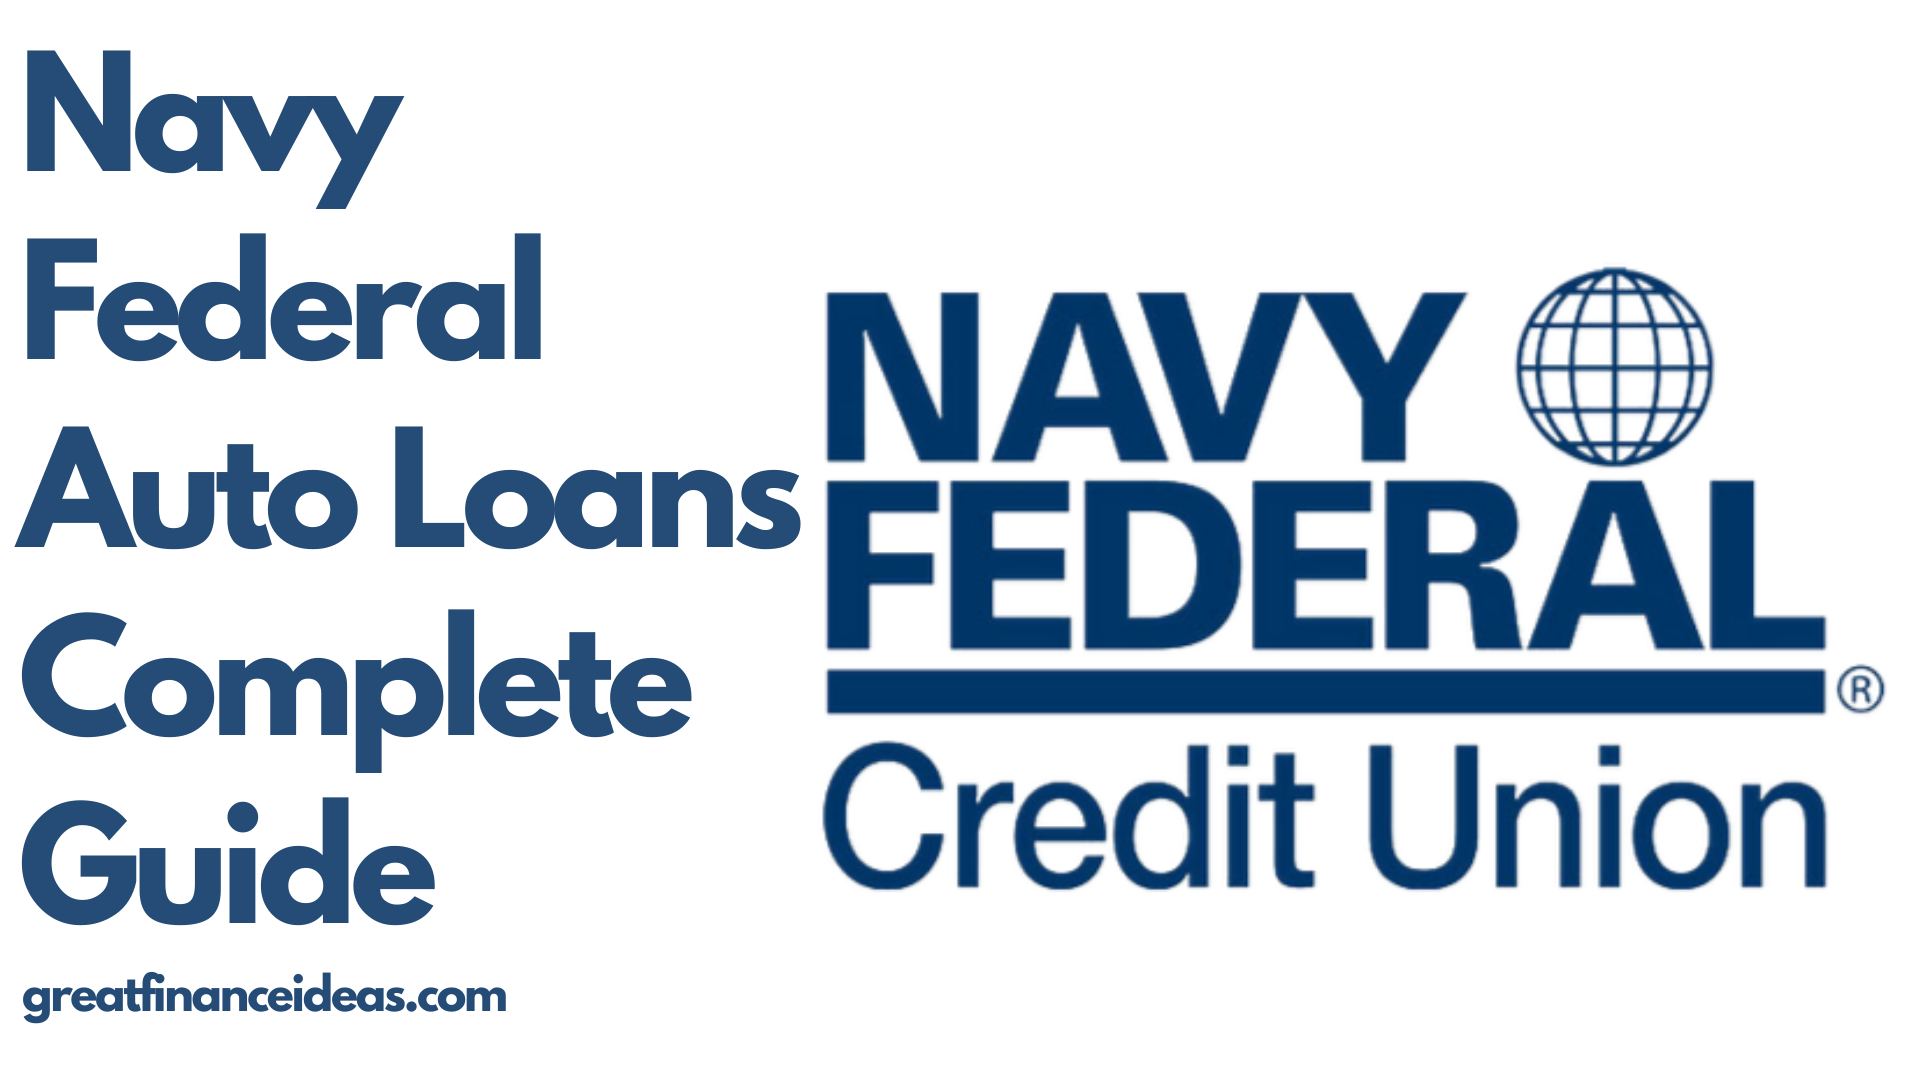 Navy Federal Auto Loans